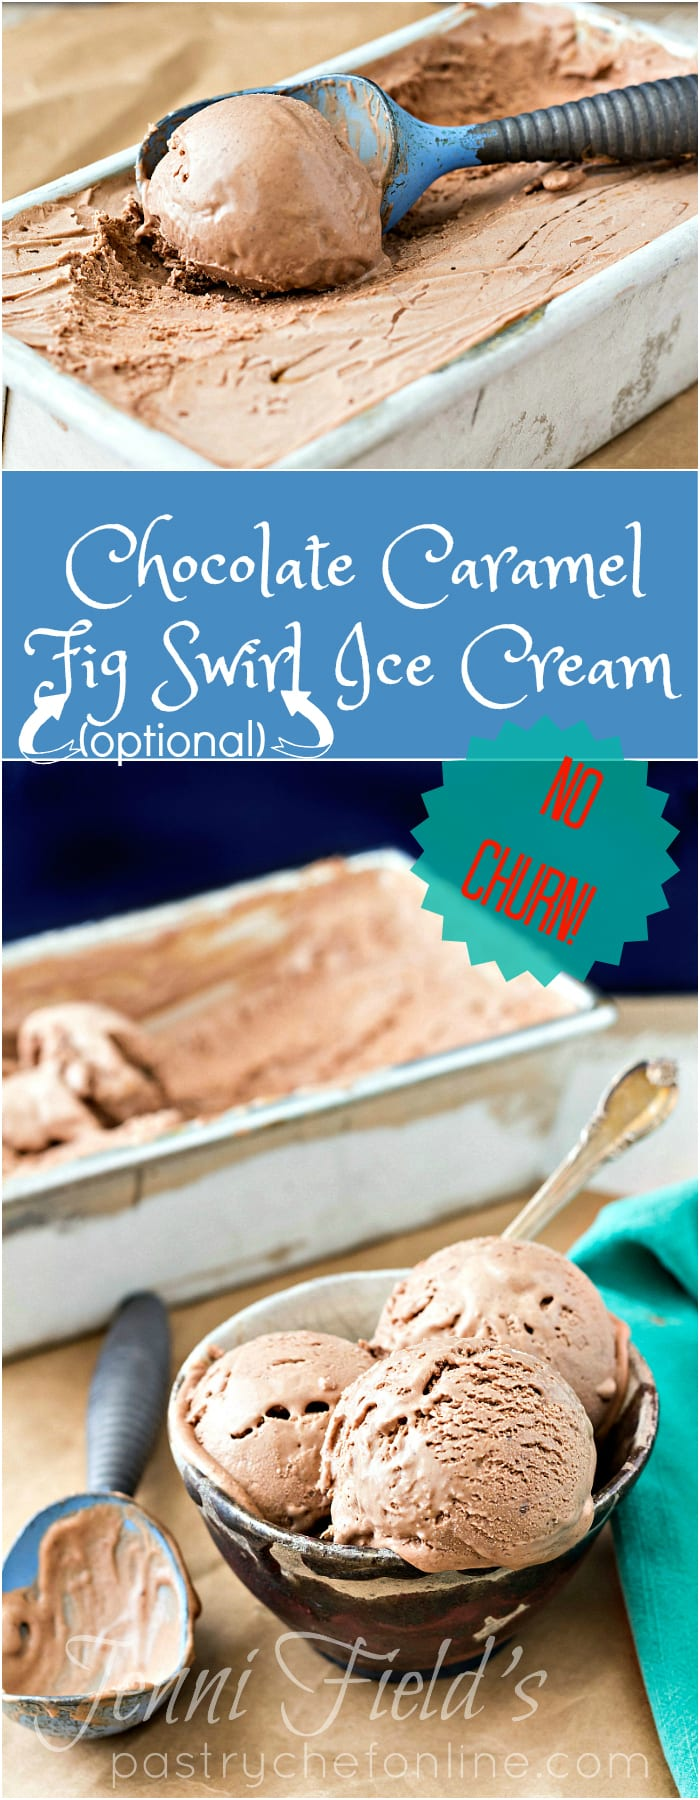 Chocolate Caramel Ice Cream is no-churn, easy to make with only 6 ingredients, and is the best chocolate ice cream you'll ever have. Swirl in any mix-ins you like. | pastrychefonline.com